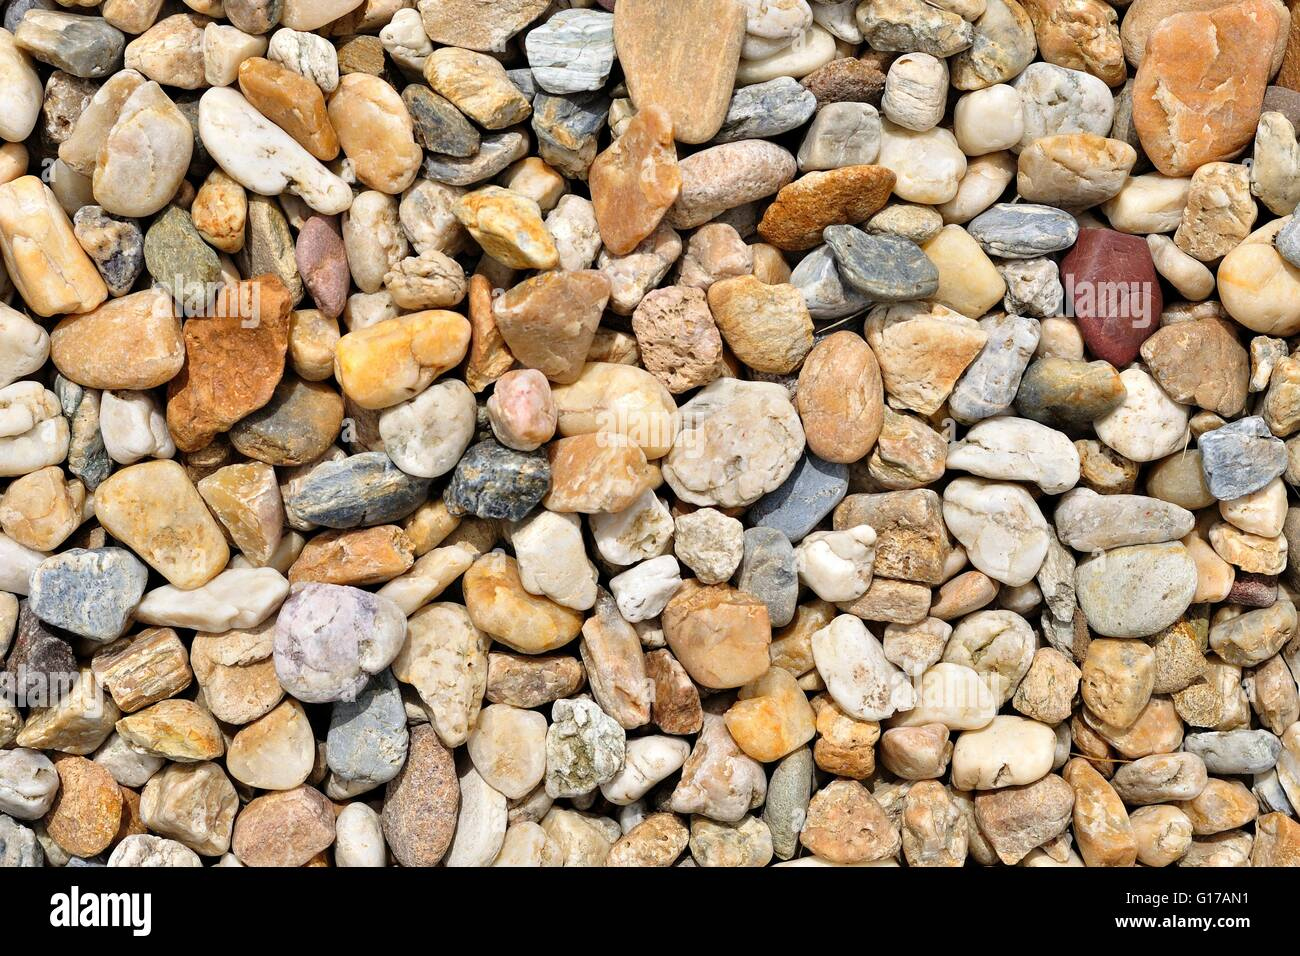 Smooth shaped white stones surface texture background stock photo - Background Of Colorful Beach Pebbles Of Different Shape And Size Stock Image